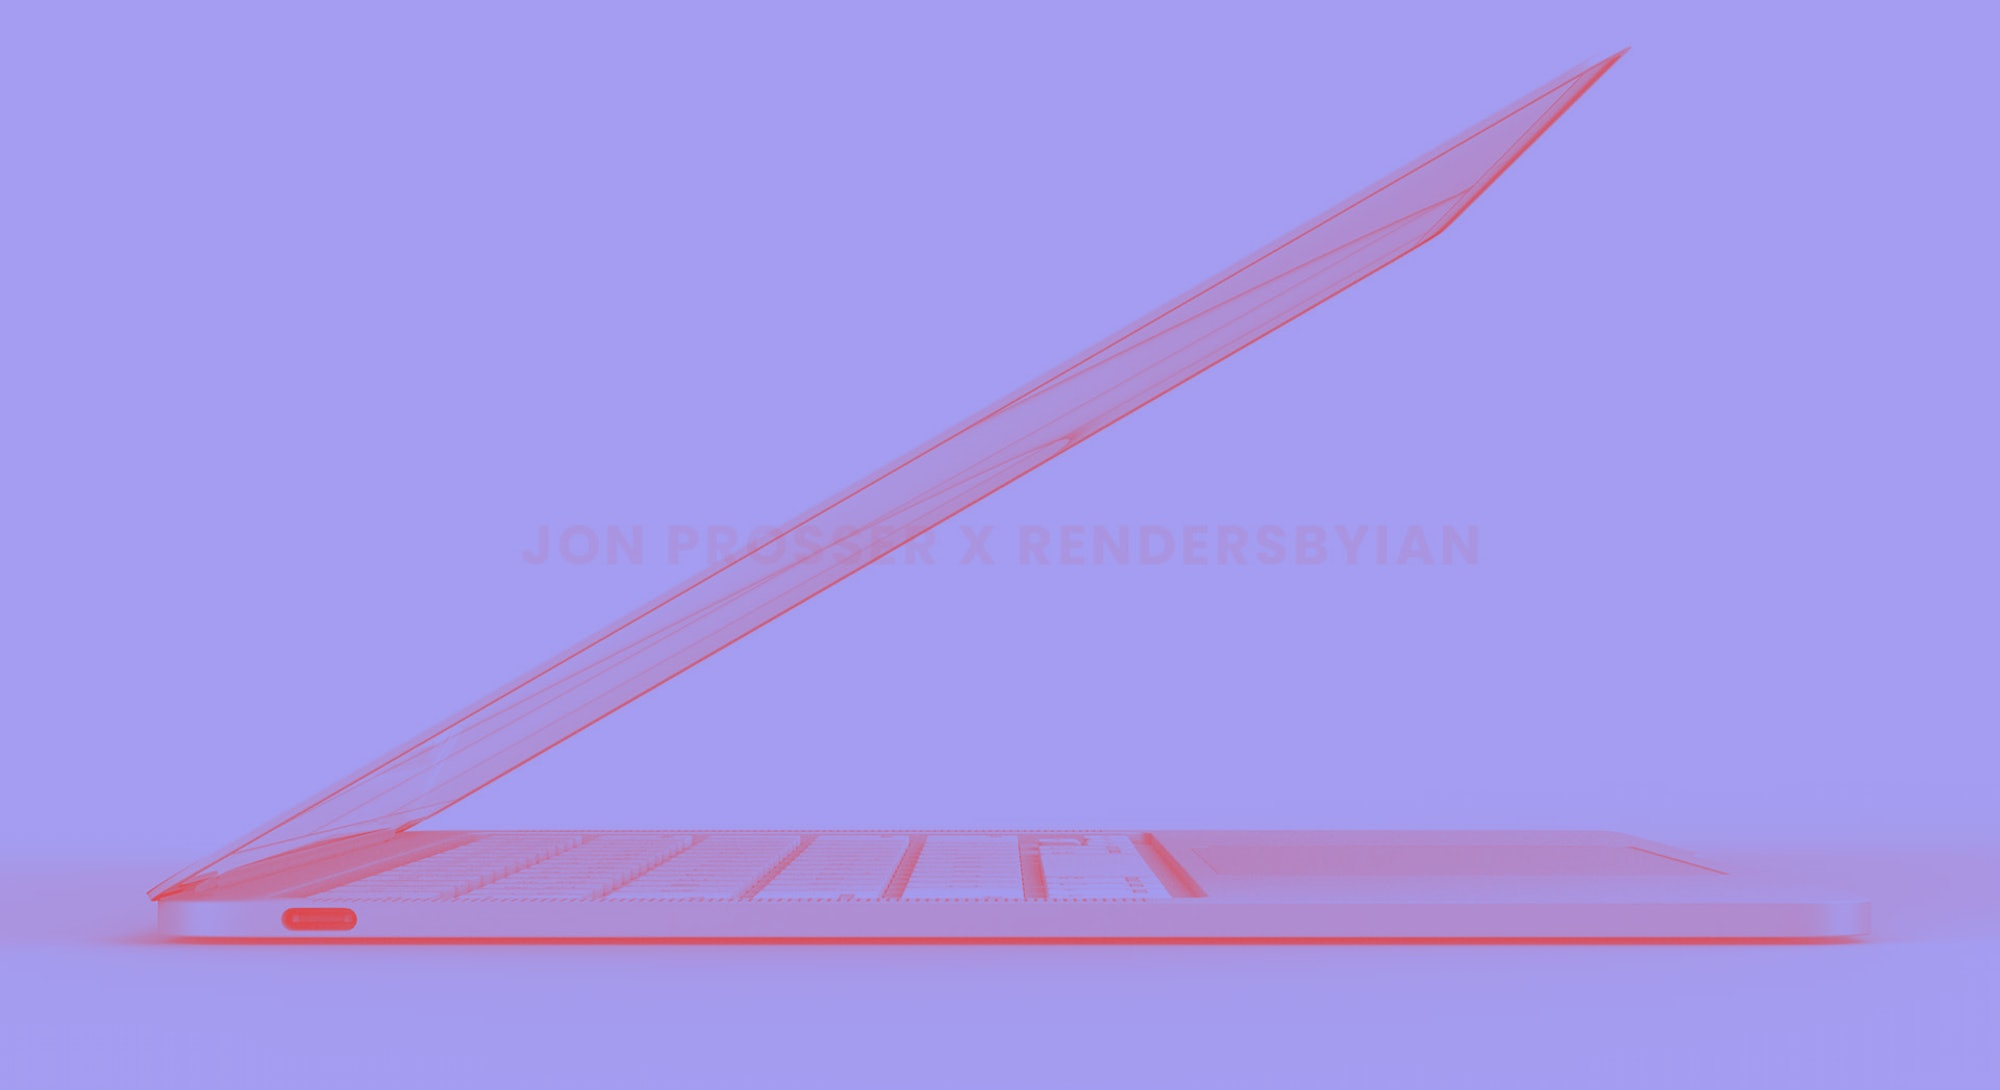 The new 2022 MacBook Air in a light purple color